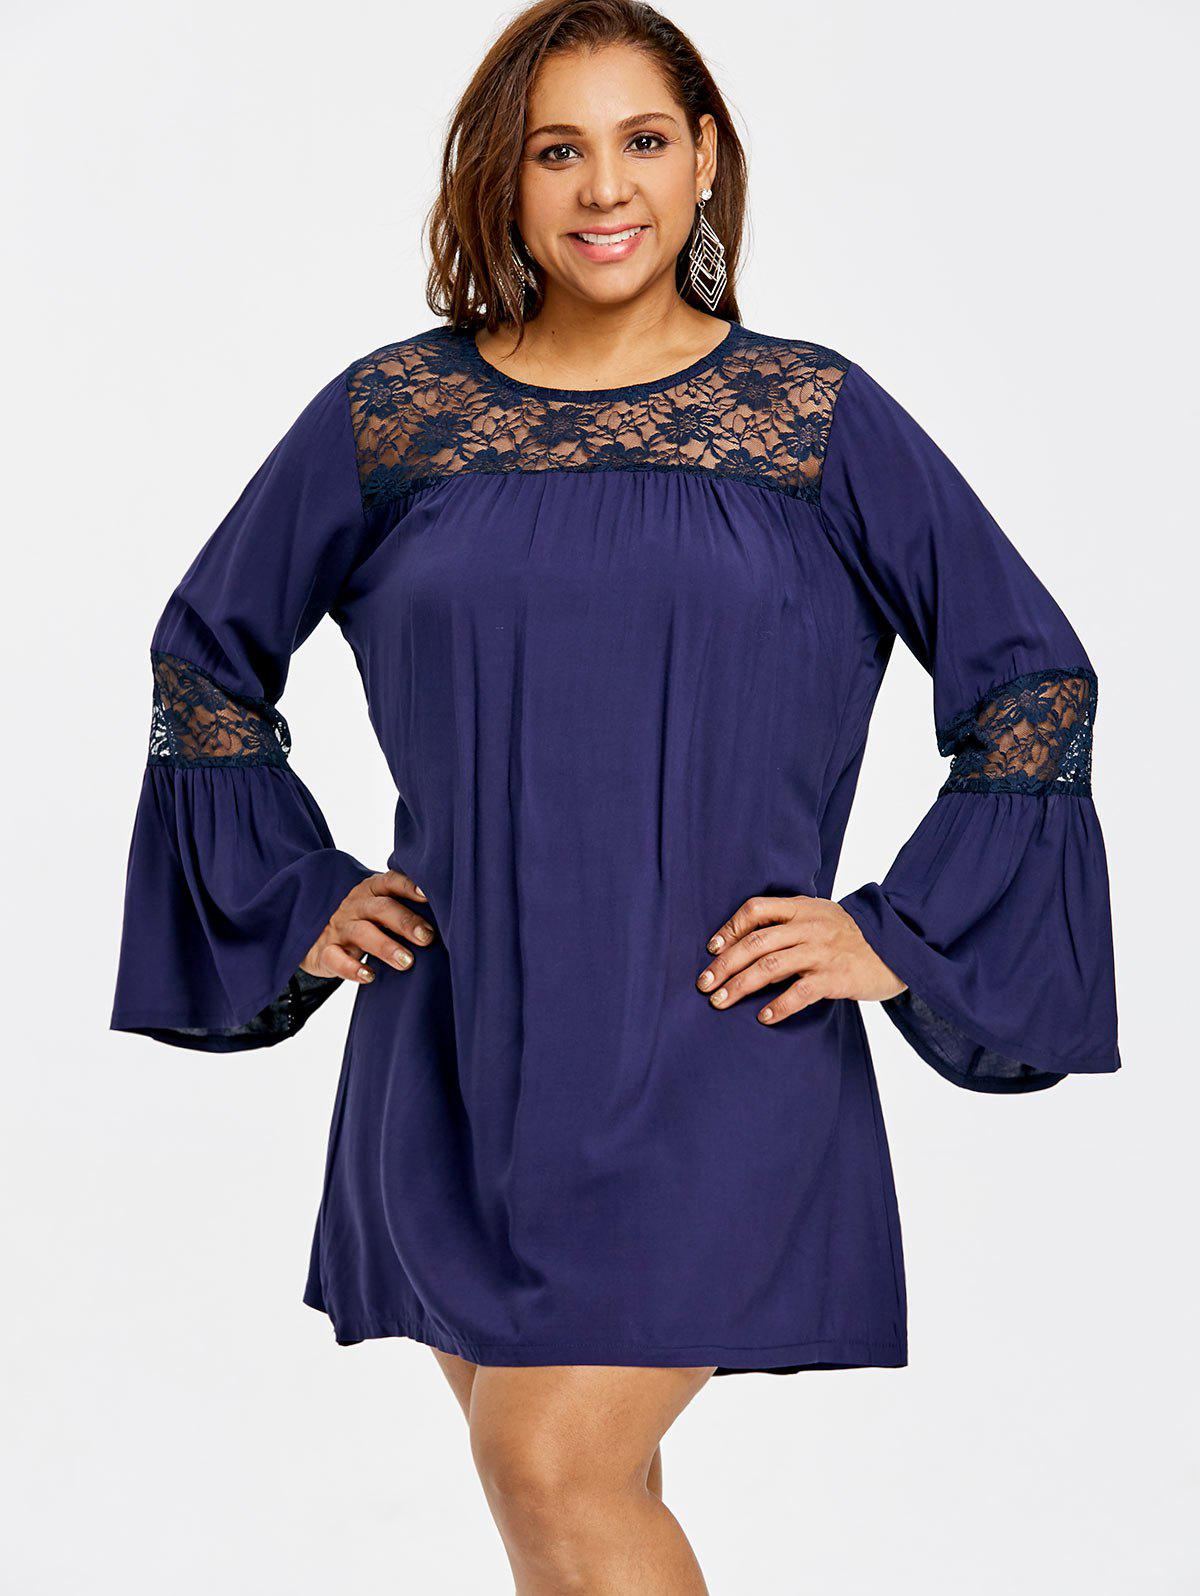 Plus Size Bell Sleeve Lace Insert Swing Dress - CADETBLUE 5XL